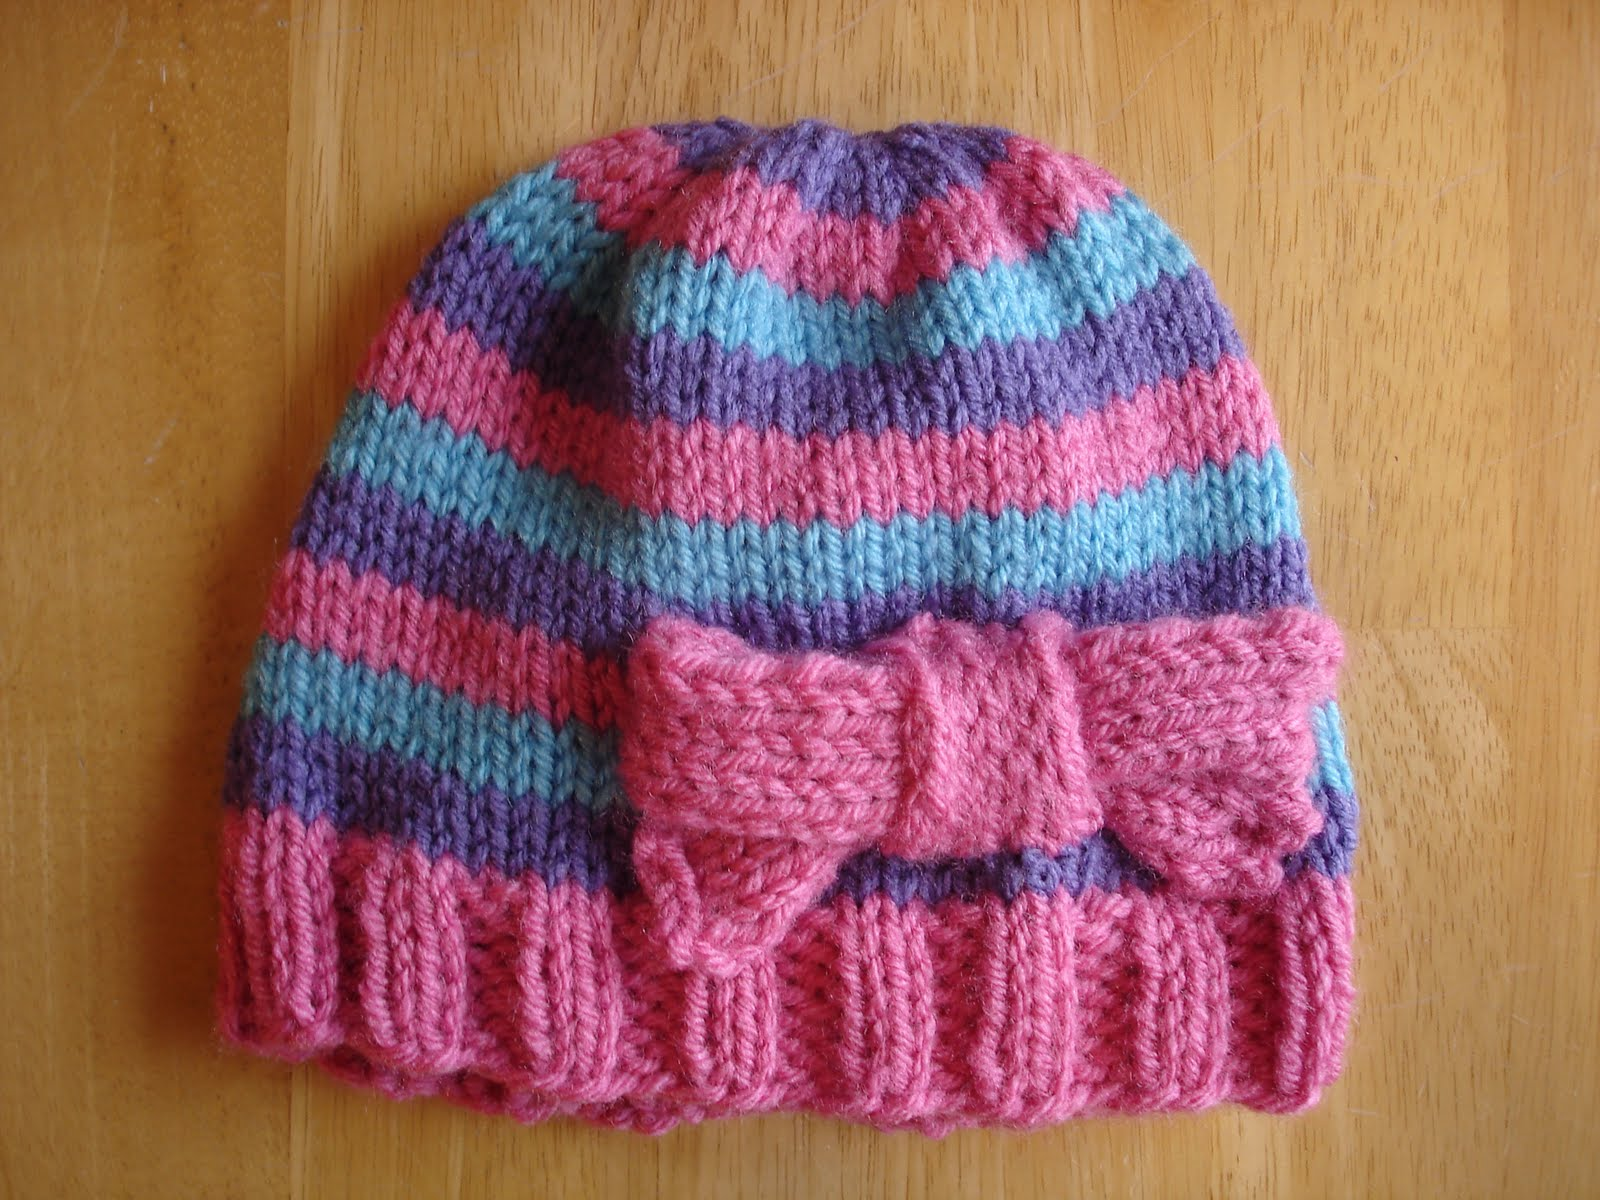 Free Knitting Pattern Childs Hat : Fiber Flux: Free Knitting Pattern...Super Pink Toddler Hat!